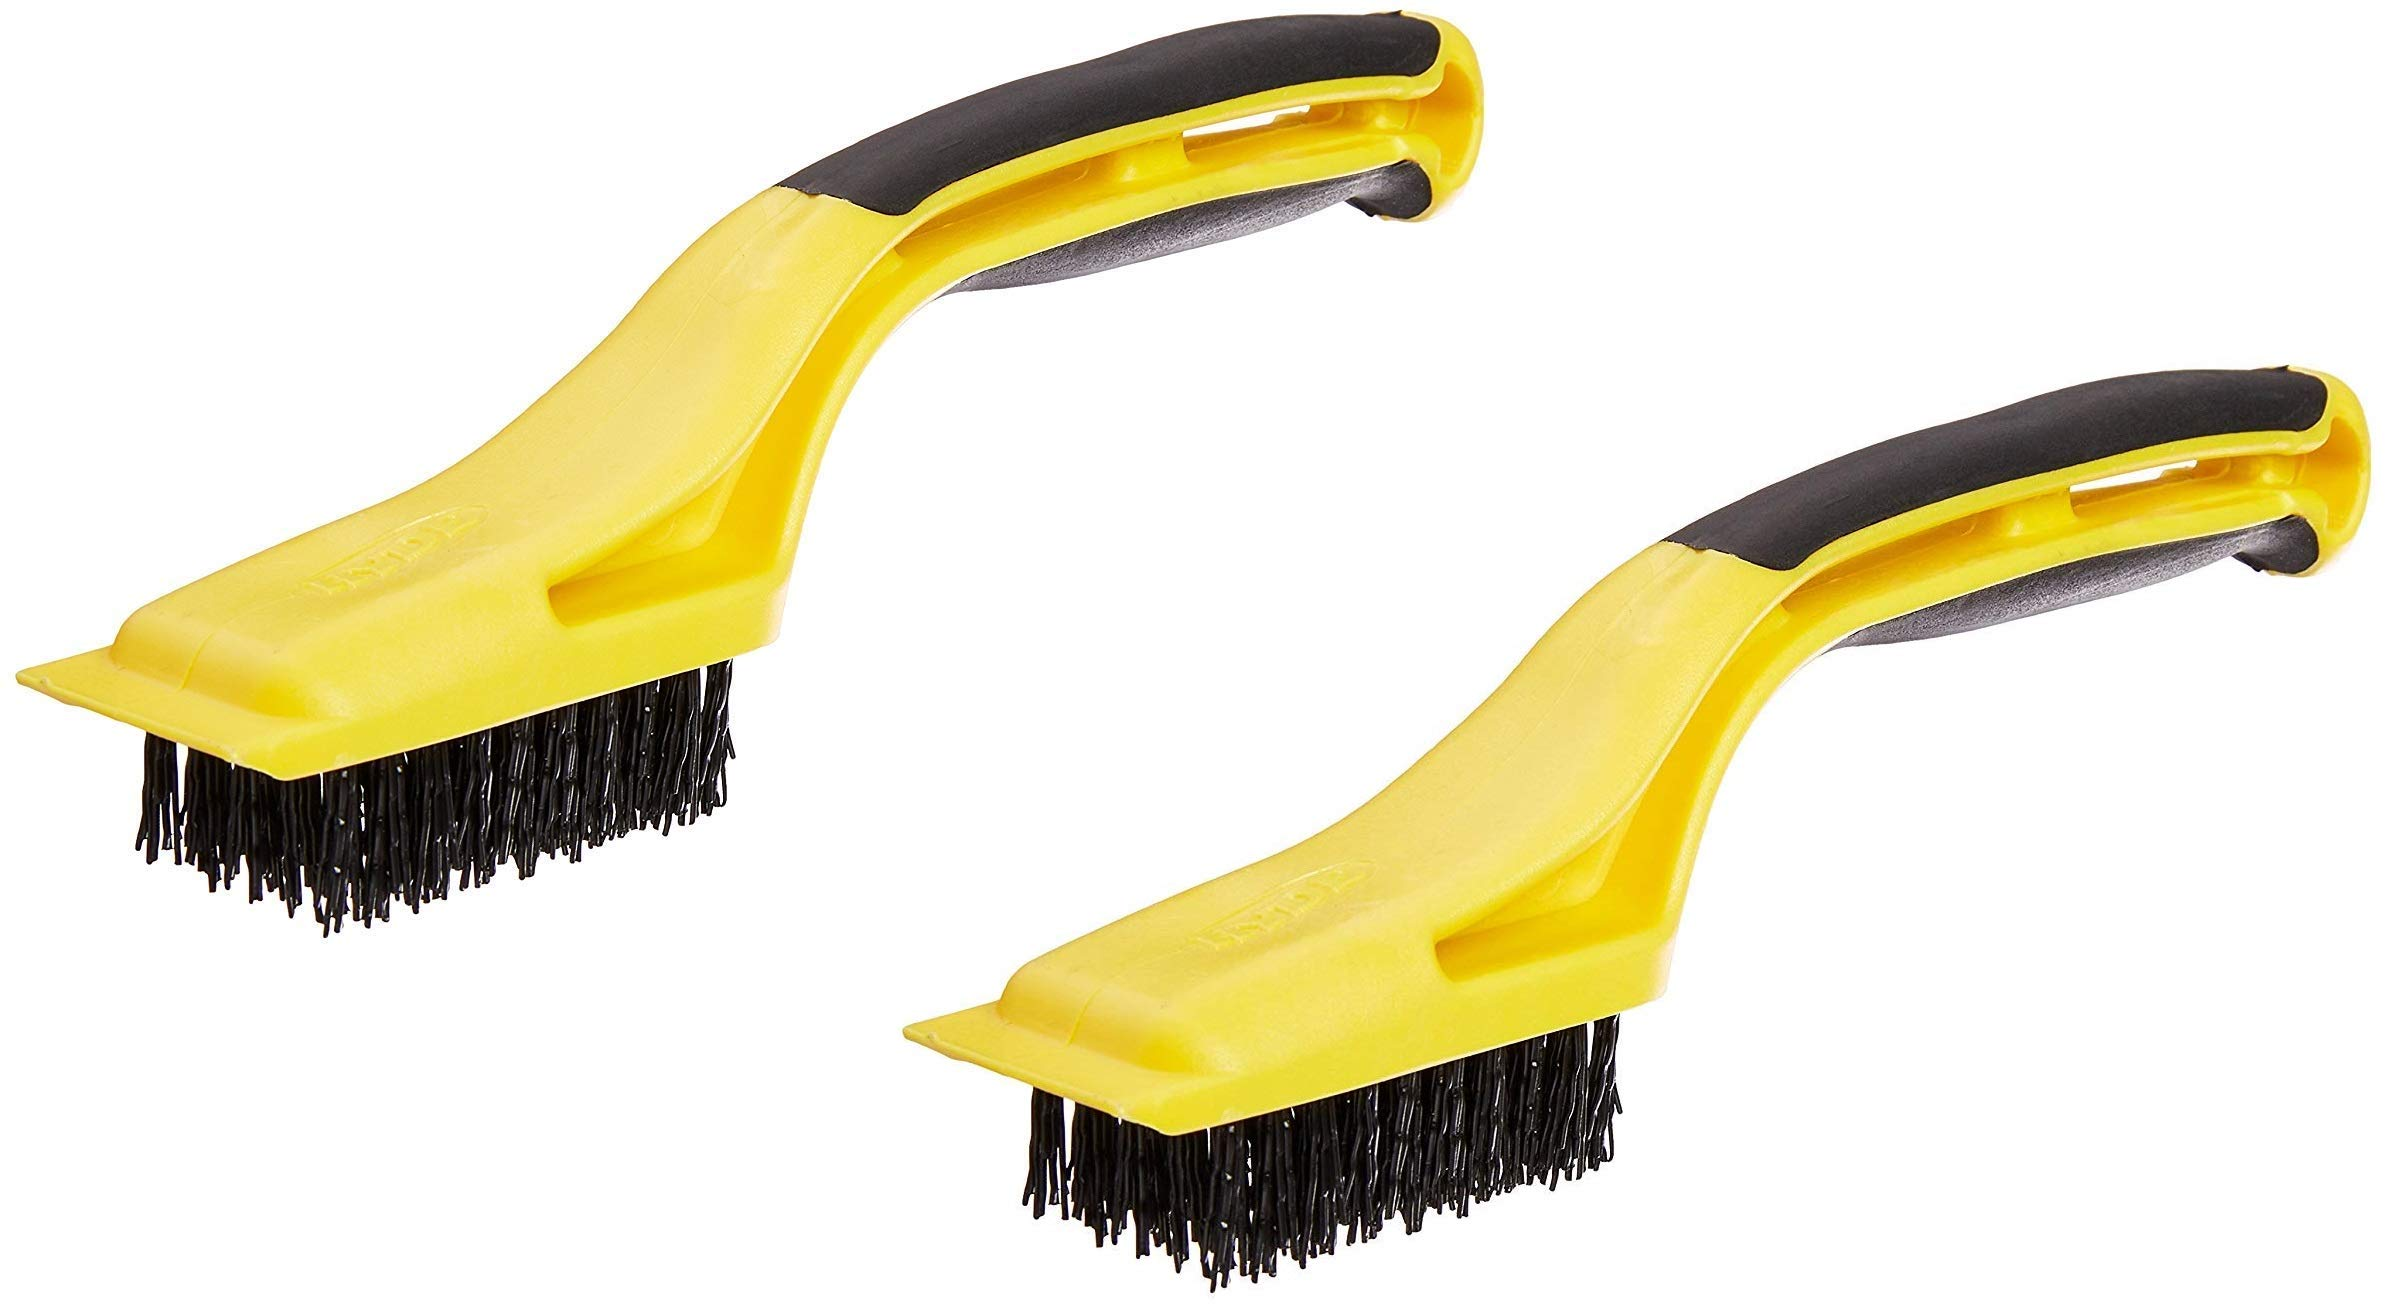 Hyde Tools 46804 Flexible Nylon Stripping Brush with Plastic Scraper and 1-1/8-Inch x 2-1/4-Inch Brush Area (2) by Hyde Tools